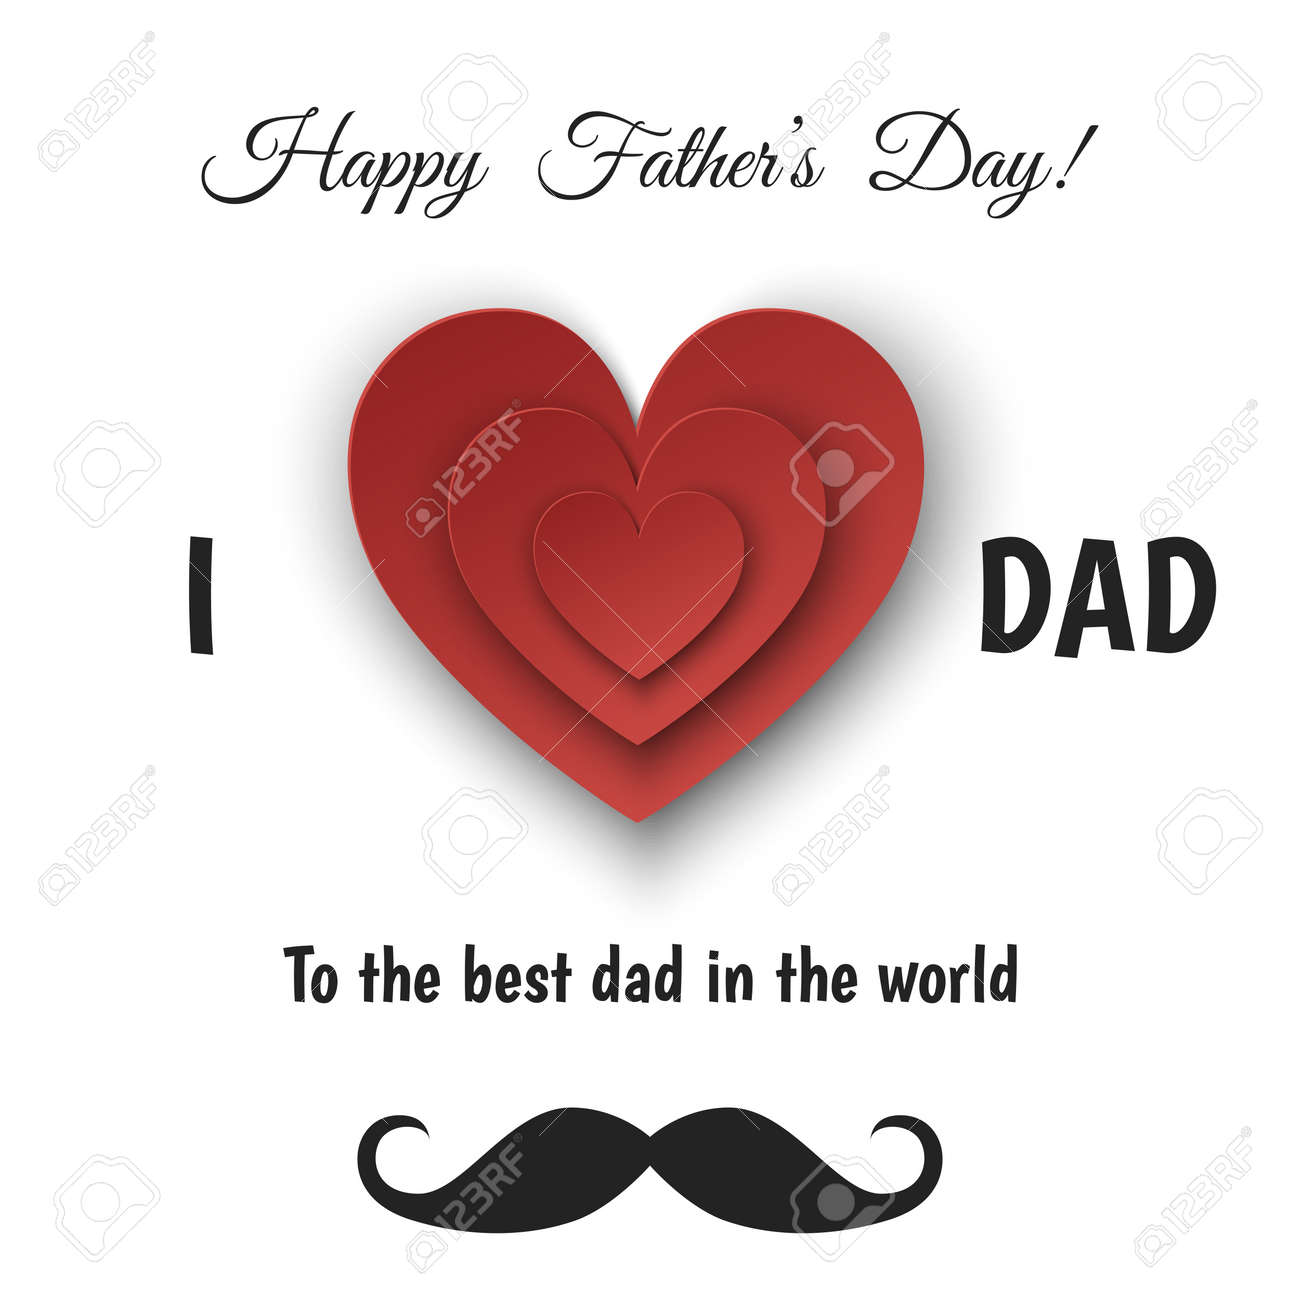 Happy Fathers Day Greeting Card With Paper Heart Isolated On White